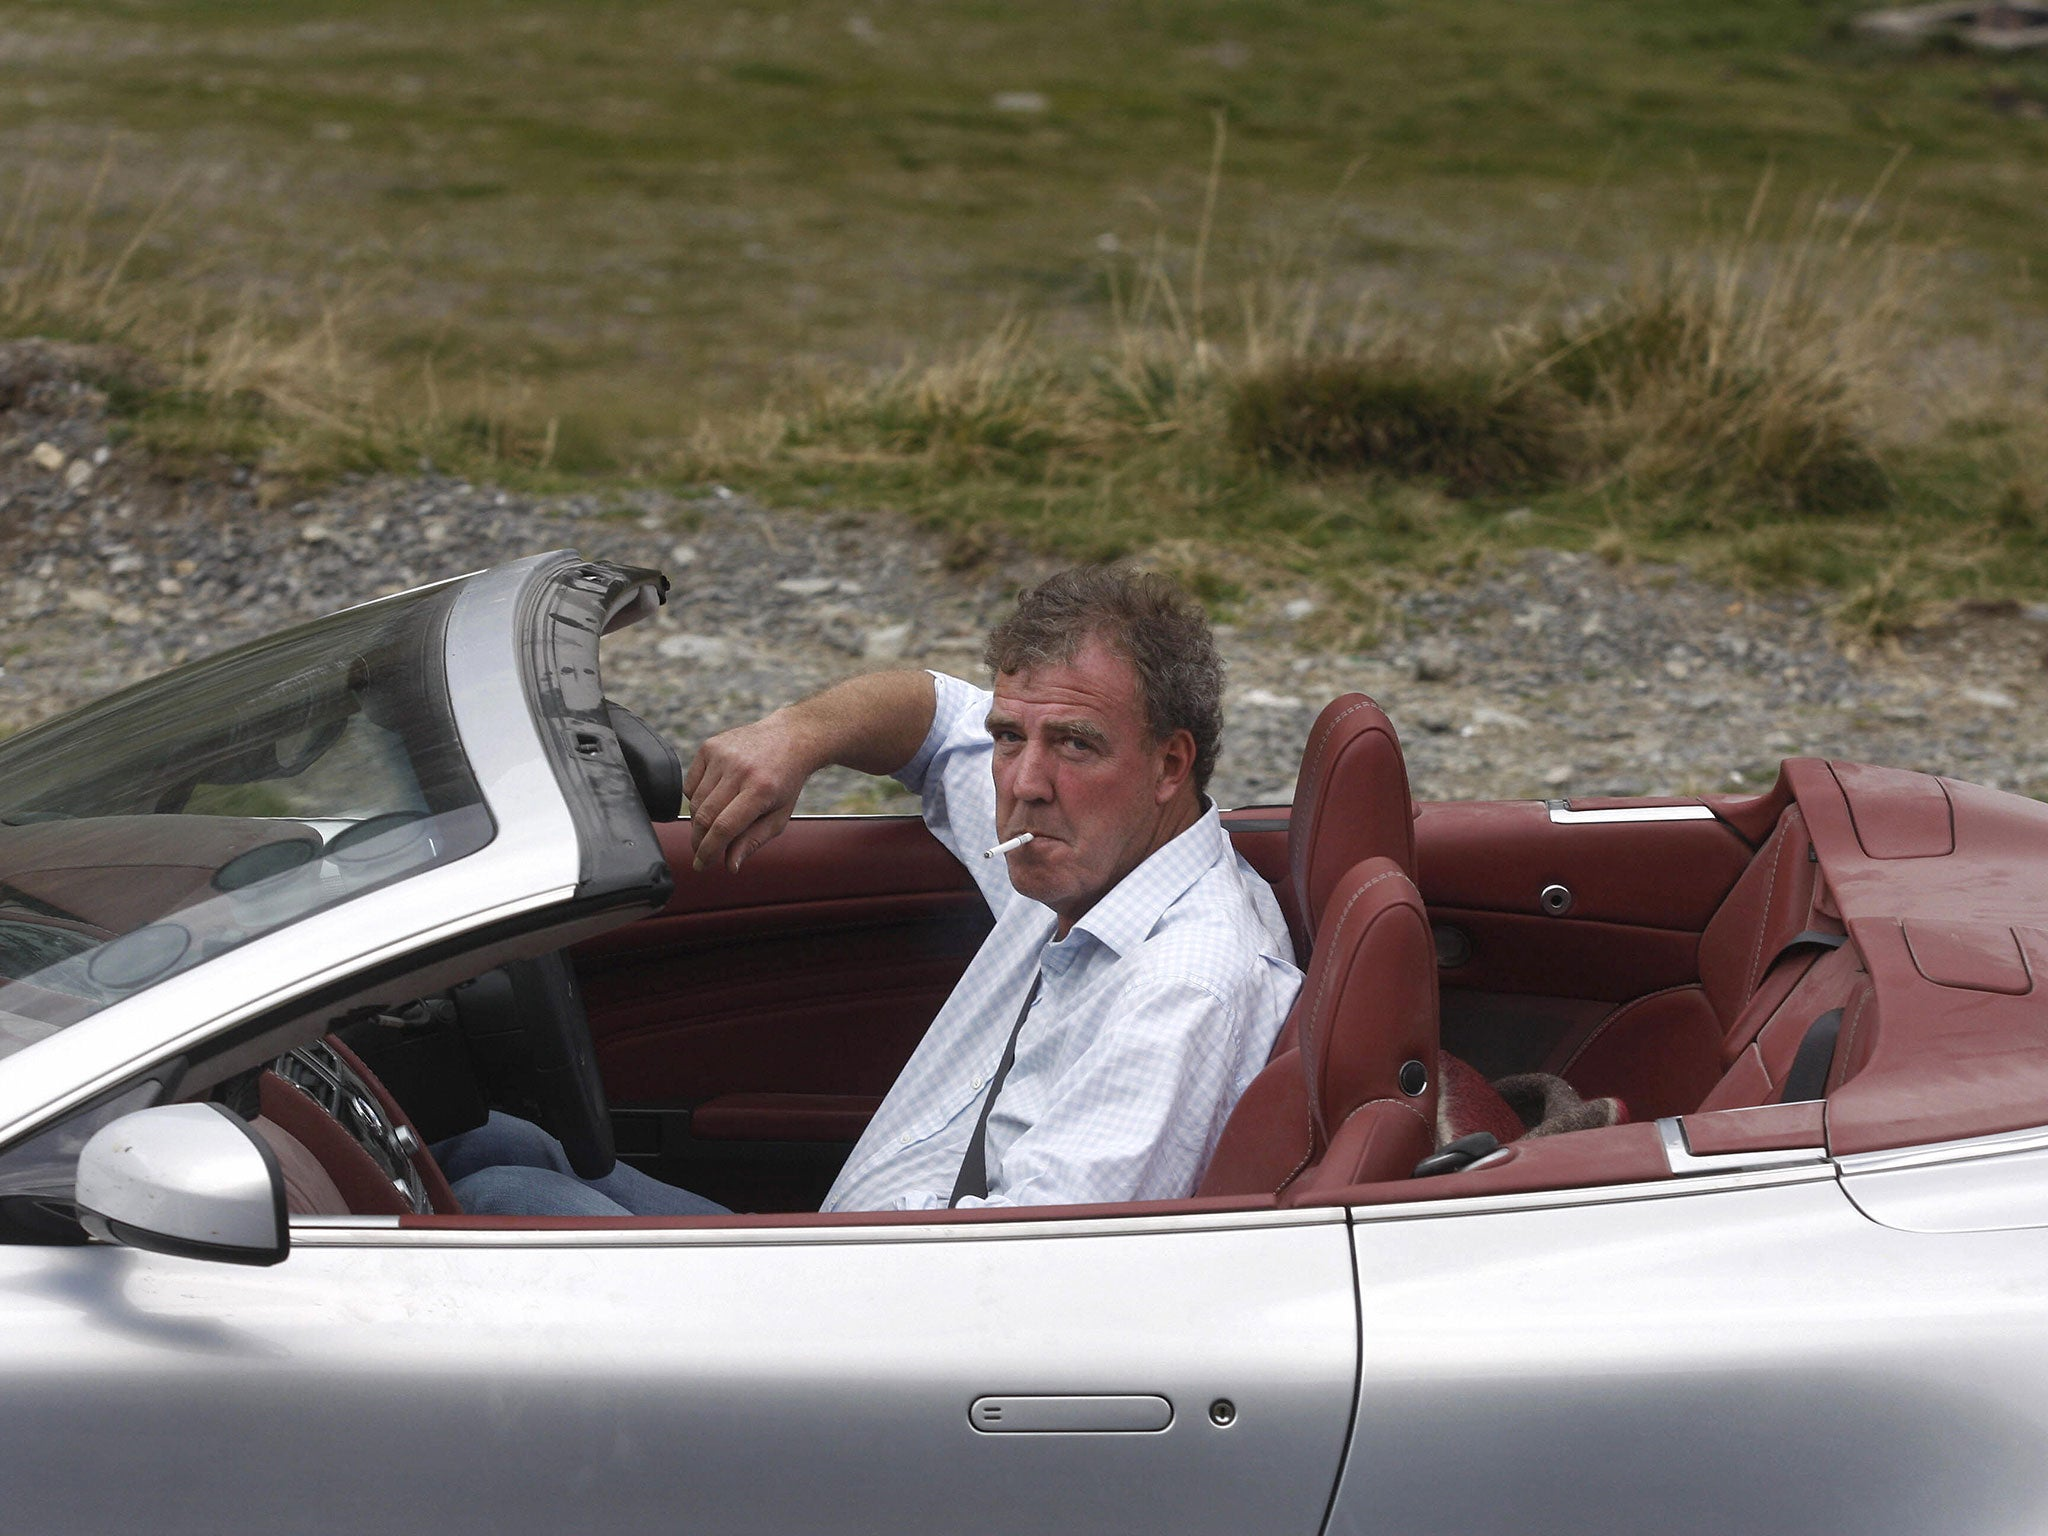 Jeremy clarkson top gear return suspended host set for live event in norway next week the independent